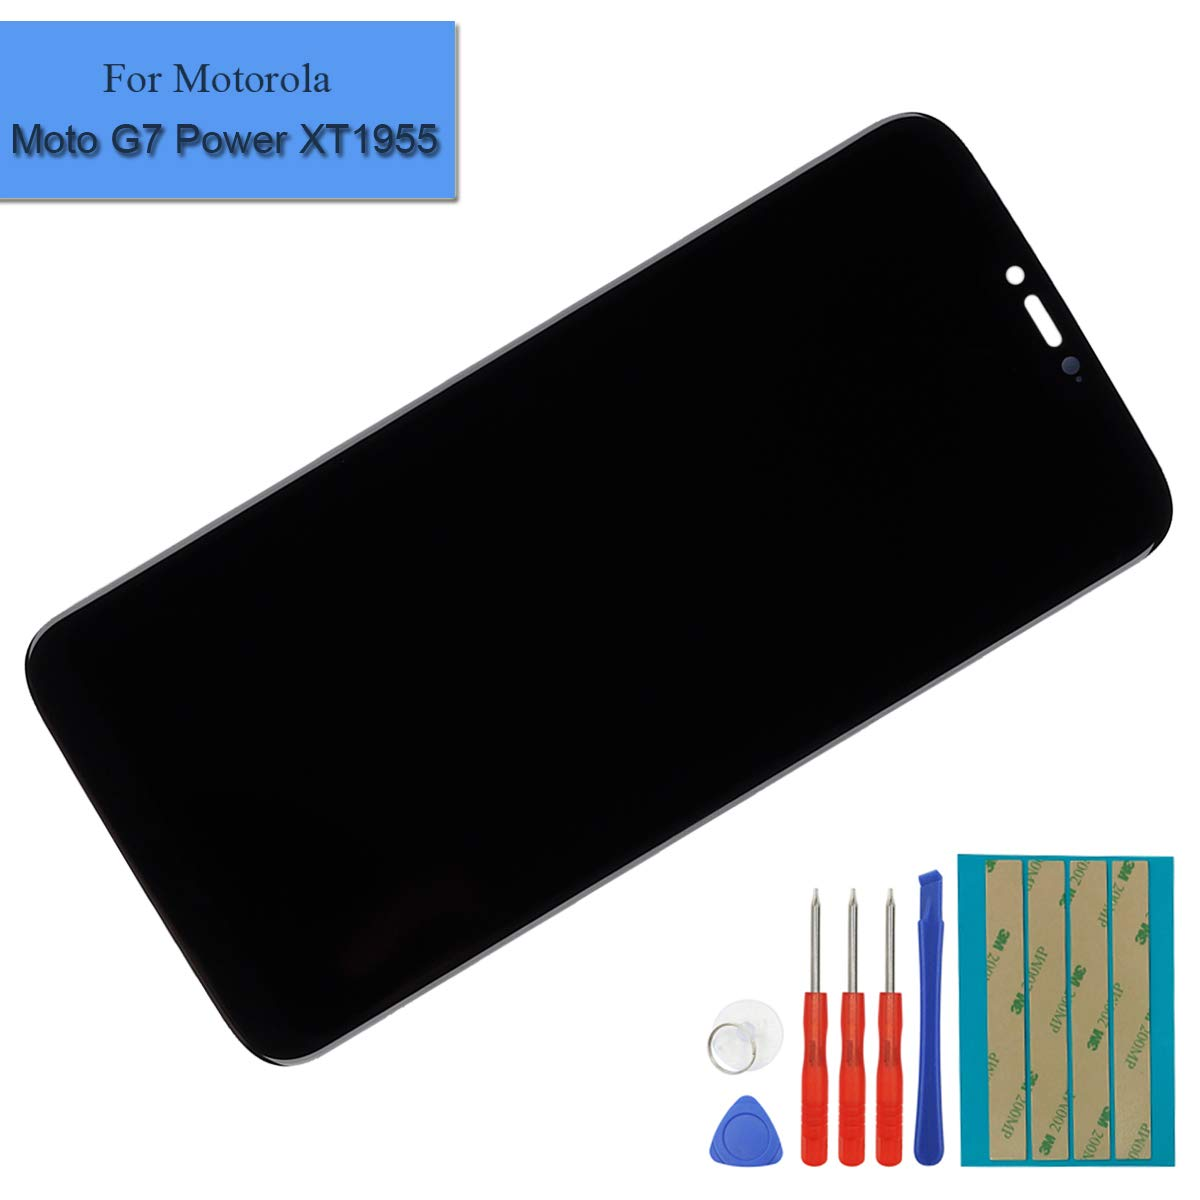 Replacement LCD Display Compatible for Motorola Moto G7 Power XT1955 6.2'' LCD Touch Screen Digitizer Assembly with Adhesive and Toolkit (Black) by E-YIIVIIL